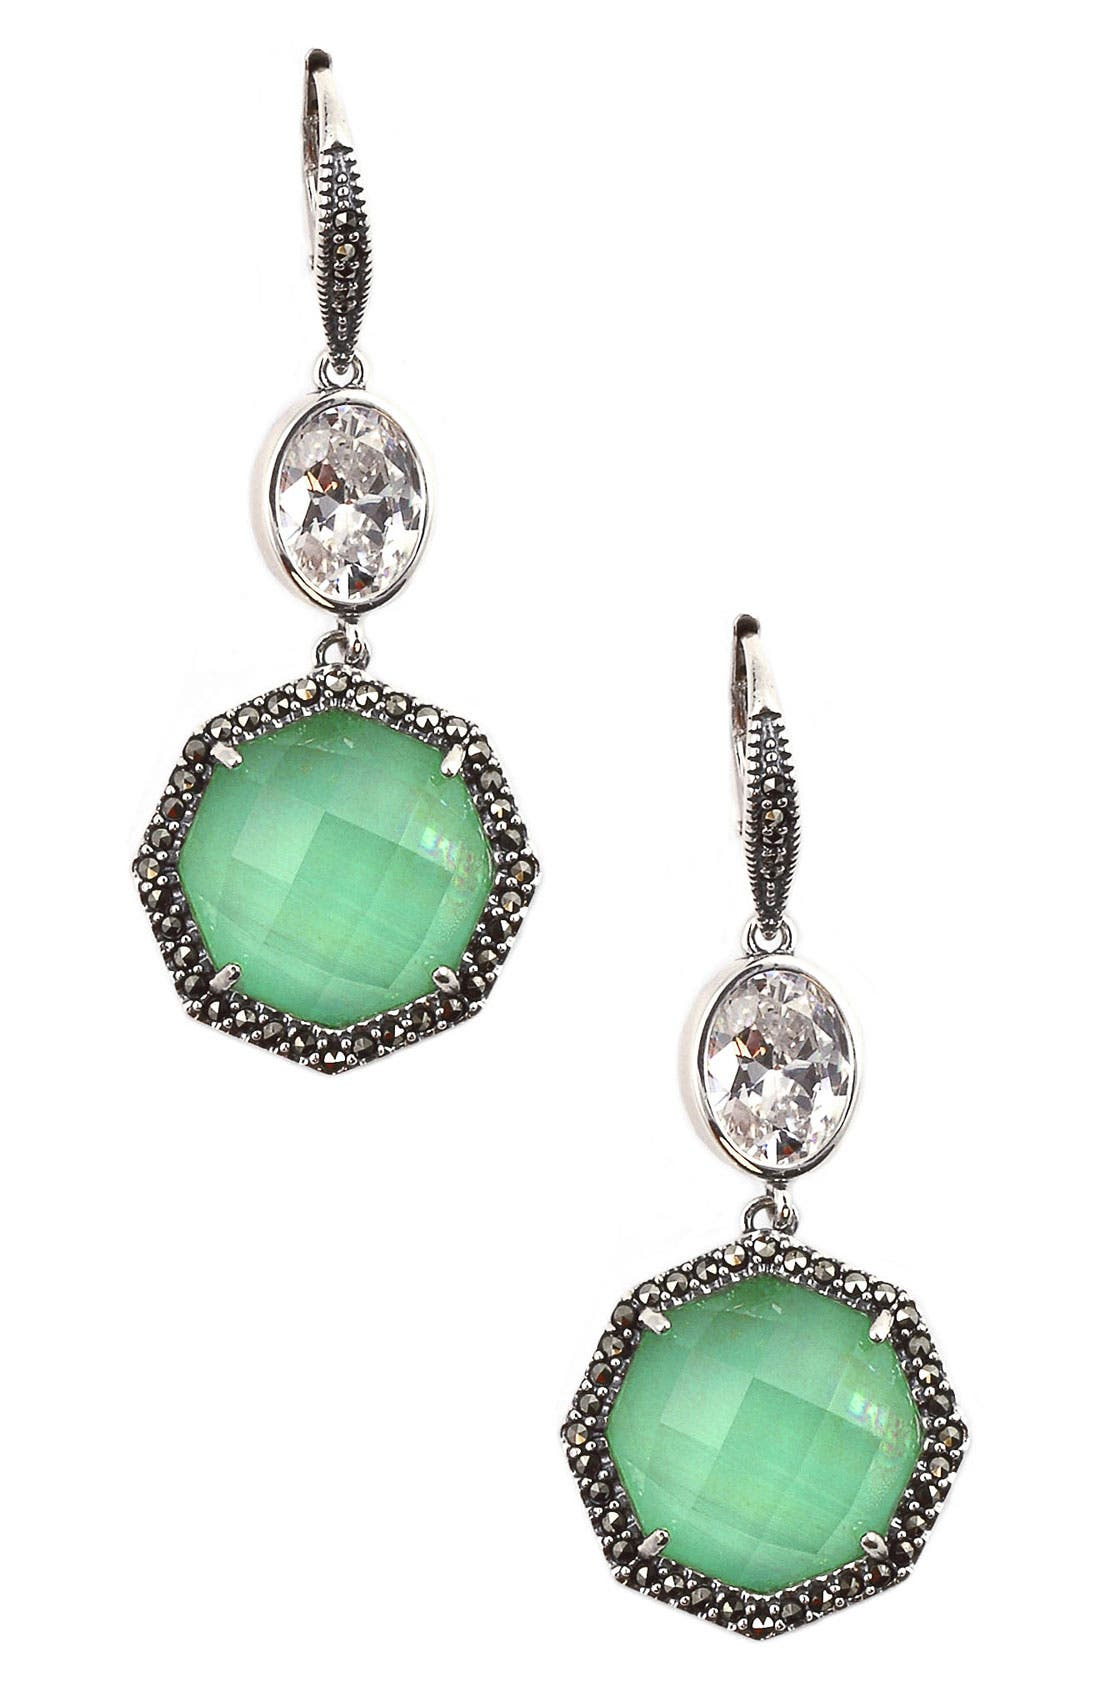 Main Image - Judith Jack 'Maldives' Medium Drop Earrings